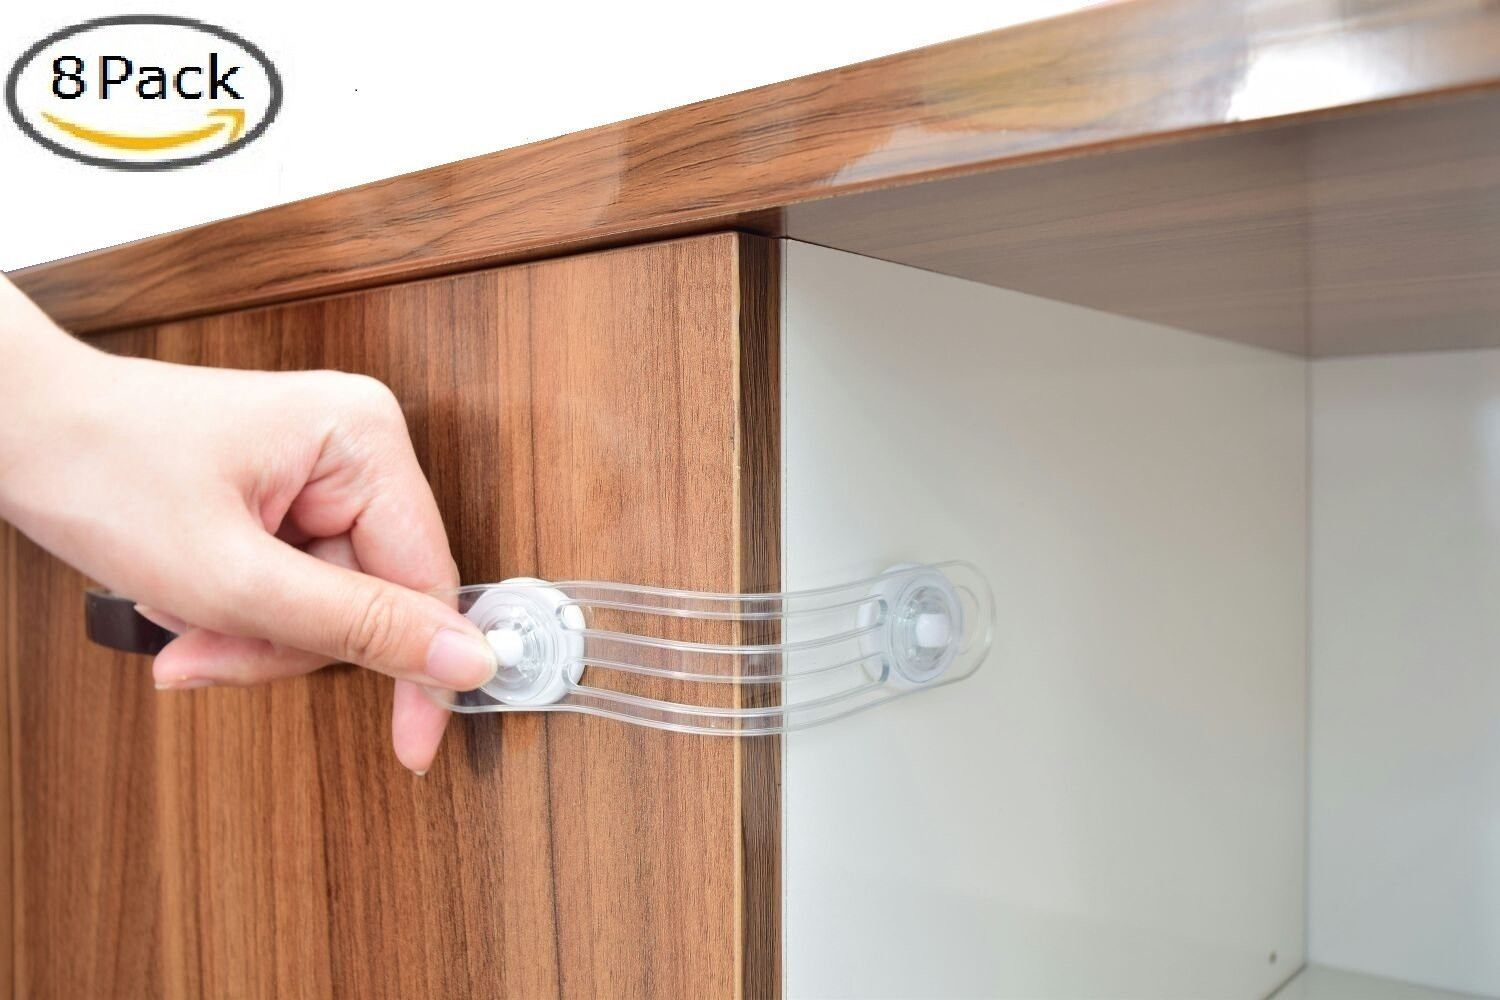 8-Pack Childproofing Cabinet Locks